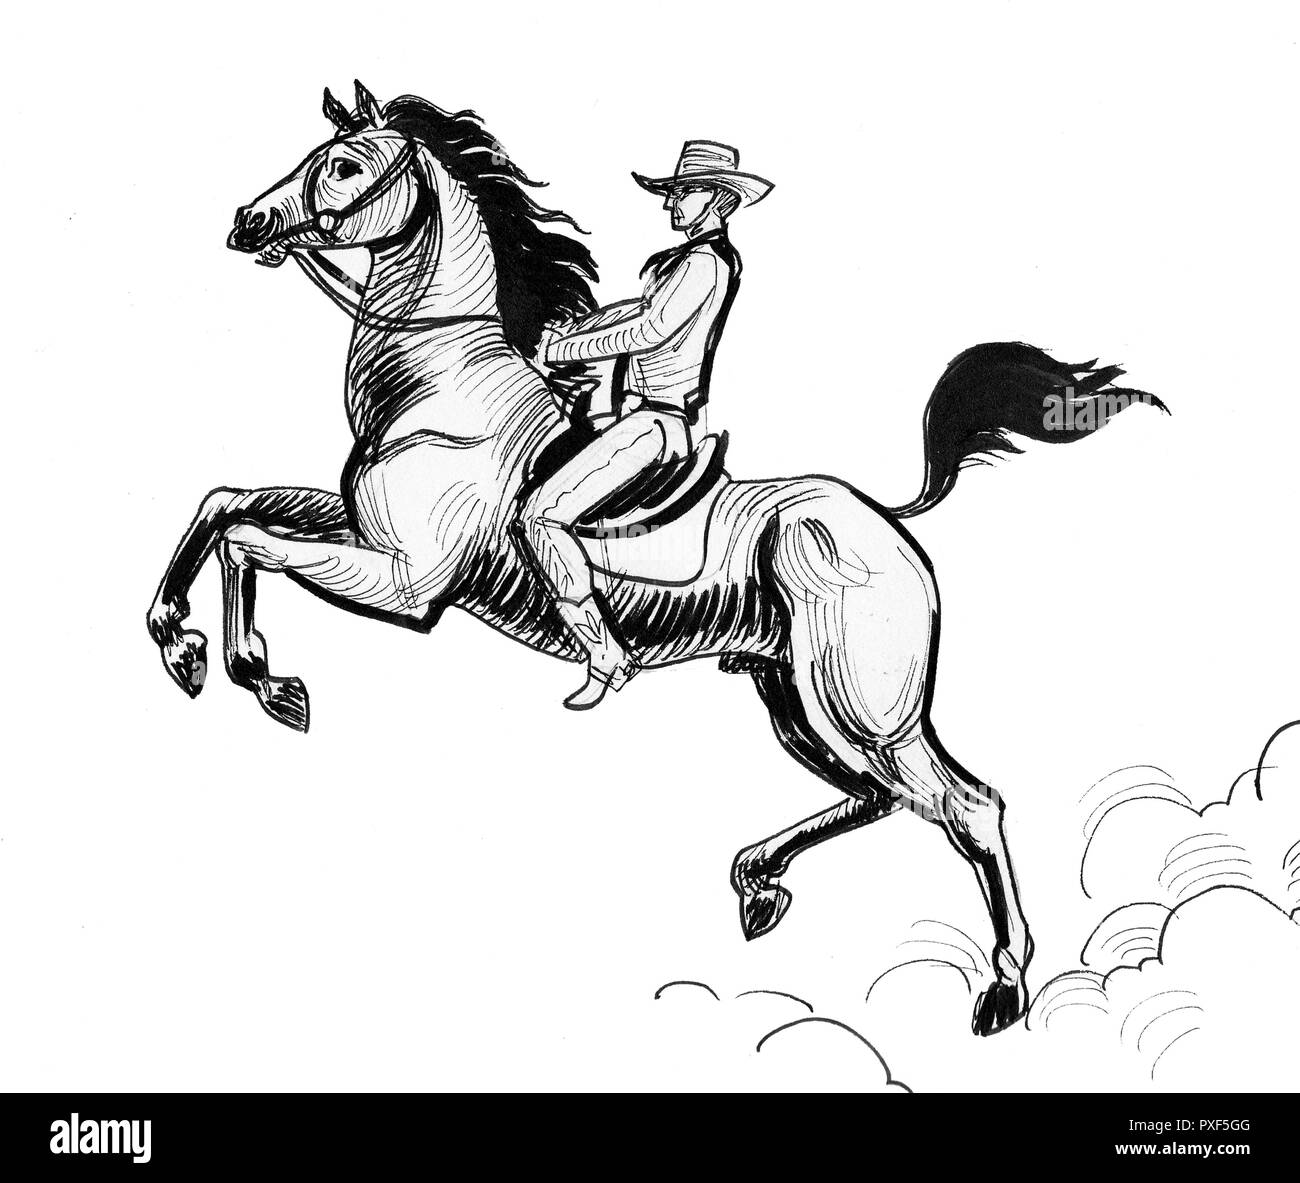 Cowboy Riding A Horse Ink Black And White Drawing Stock Photo